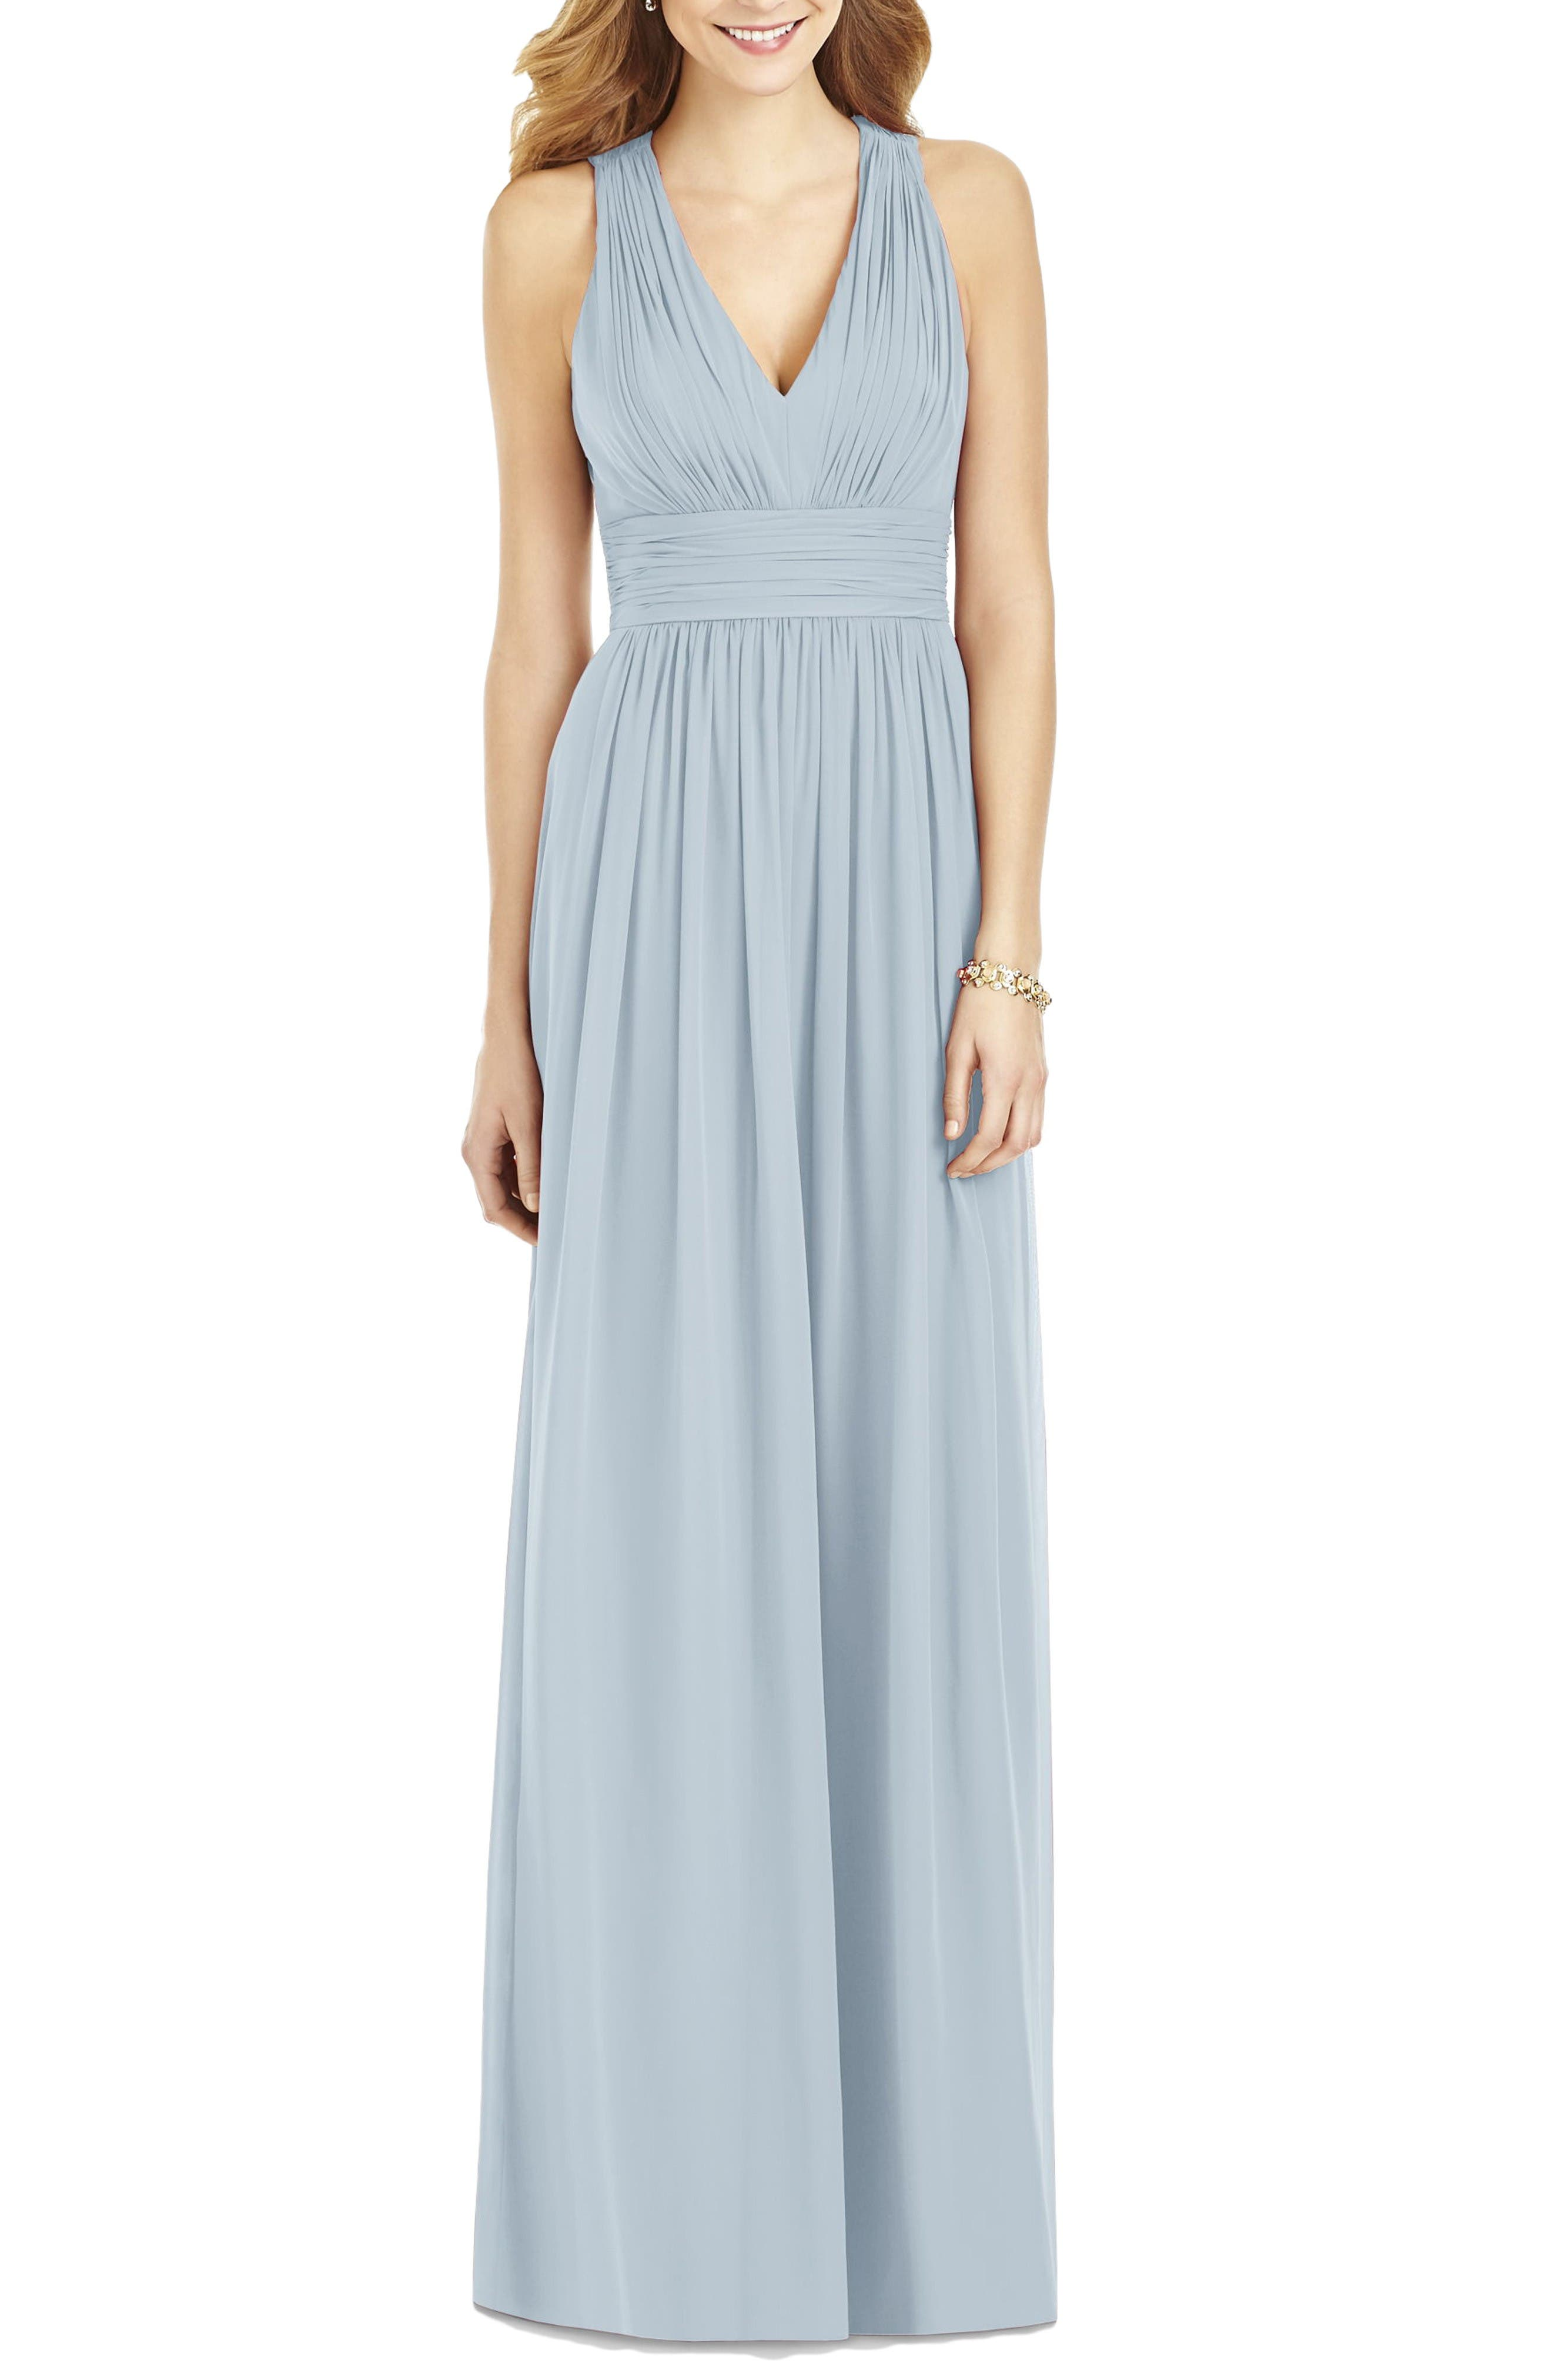 Alternate Image 1 Selected - After Six Crisscross Back Ruched Chiffon V-Neck Gown